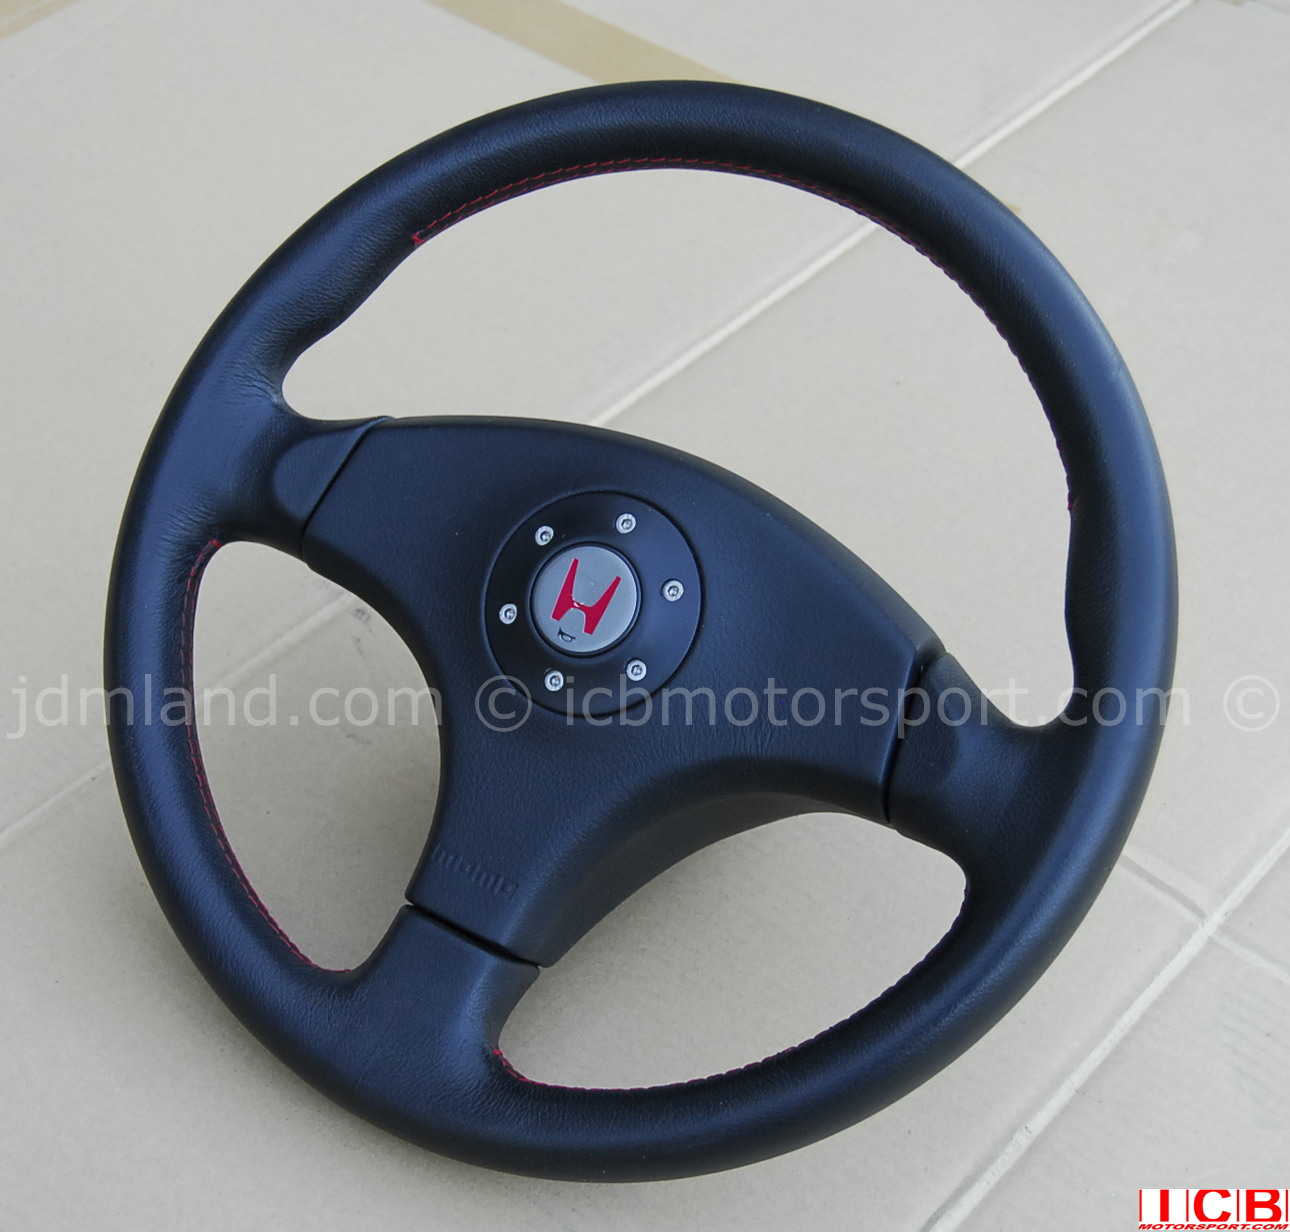 used jdm civic ek9 type r steering wheel non srs rare sold